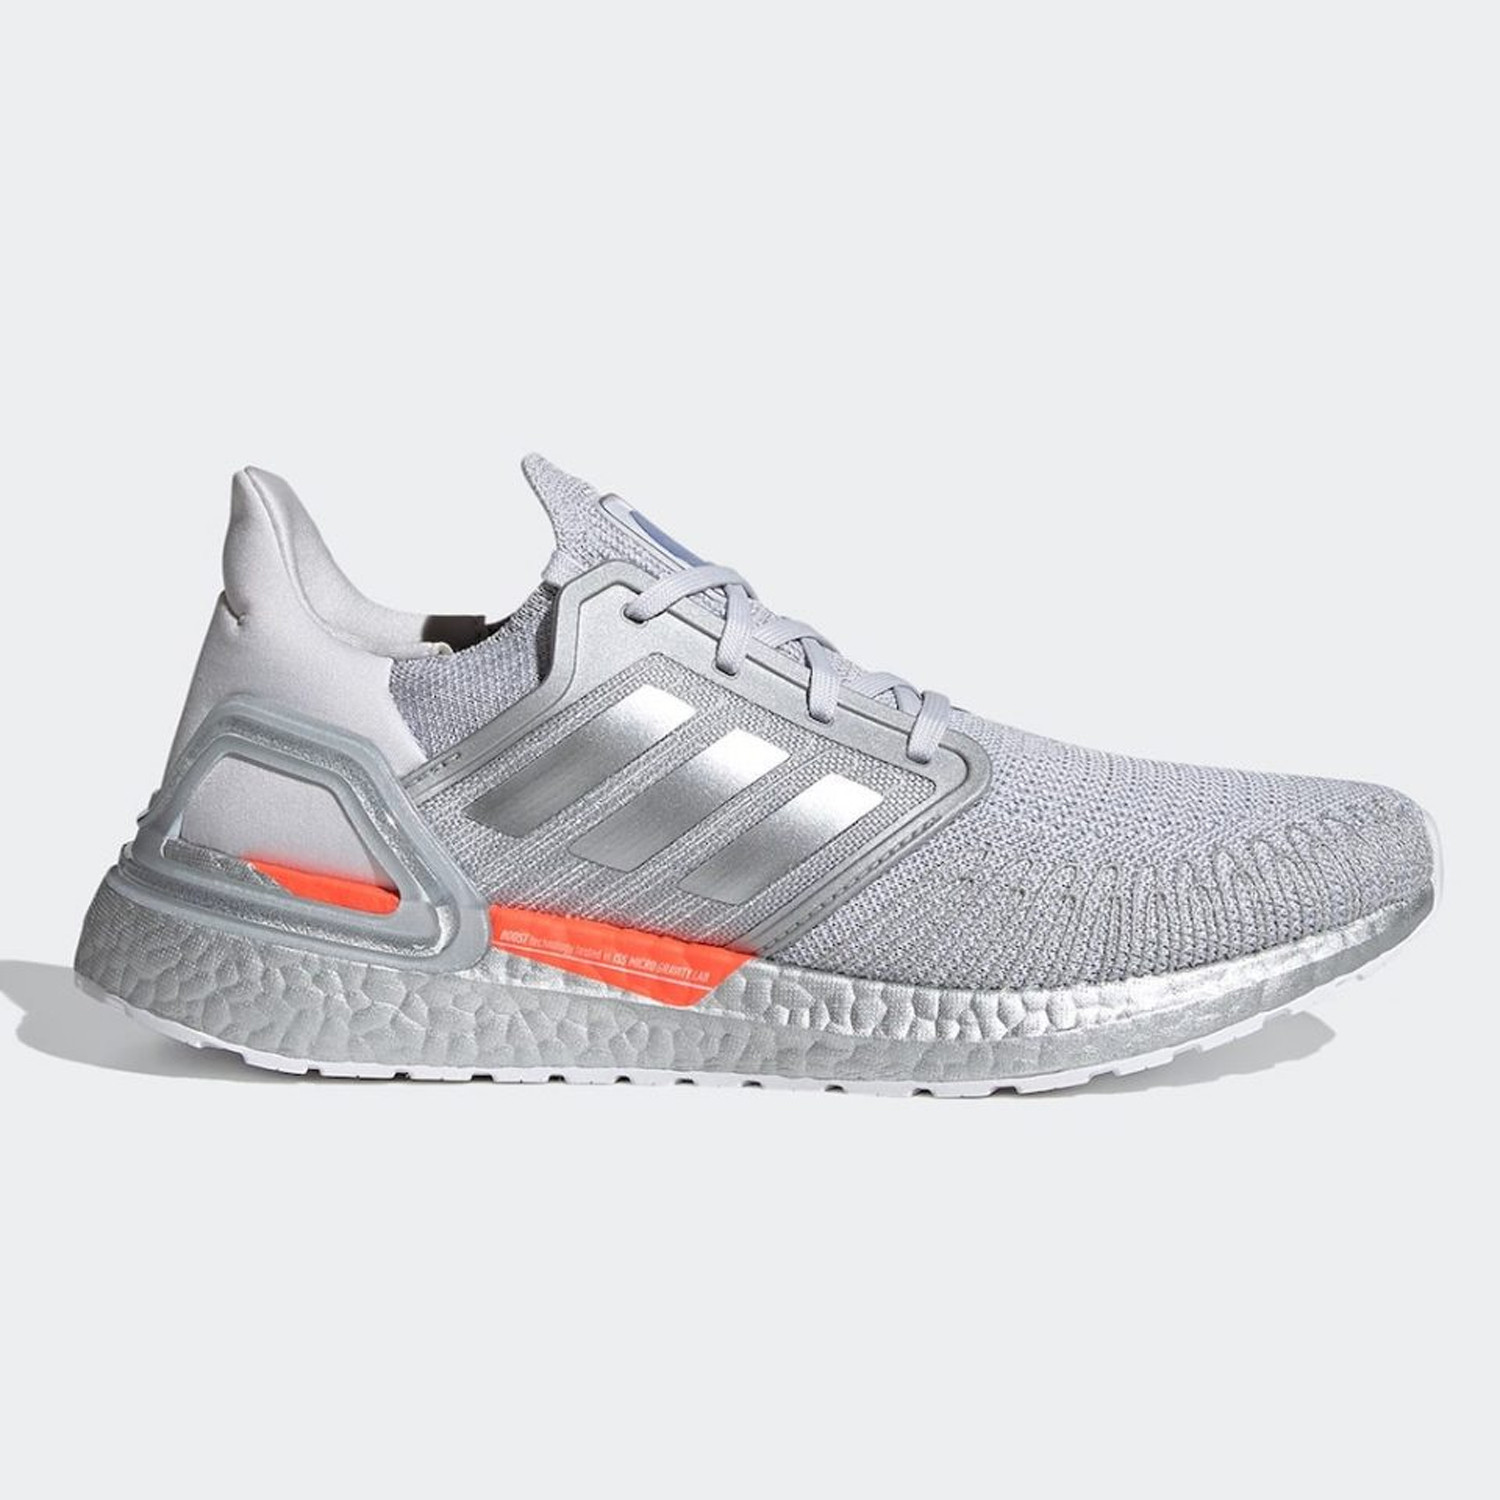 """adidas Ultraboost 20 DNA Ανδρικά Παπούτσια """"Space Race"""" (9000067968_49913)"""